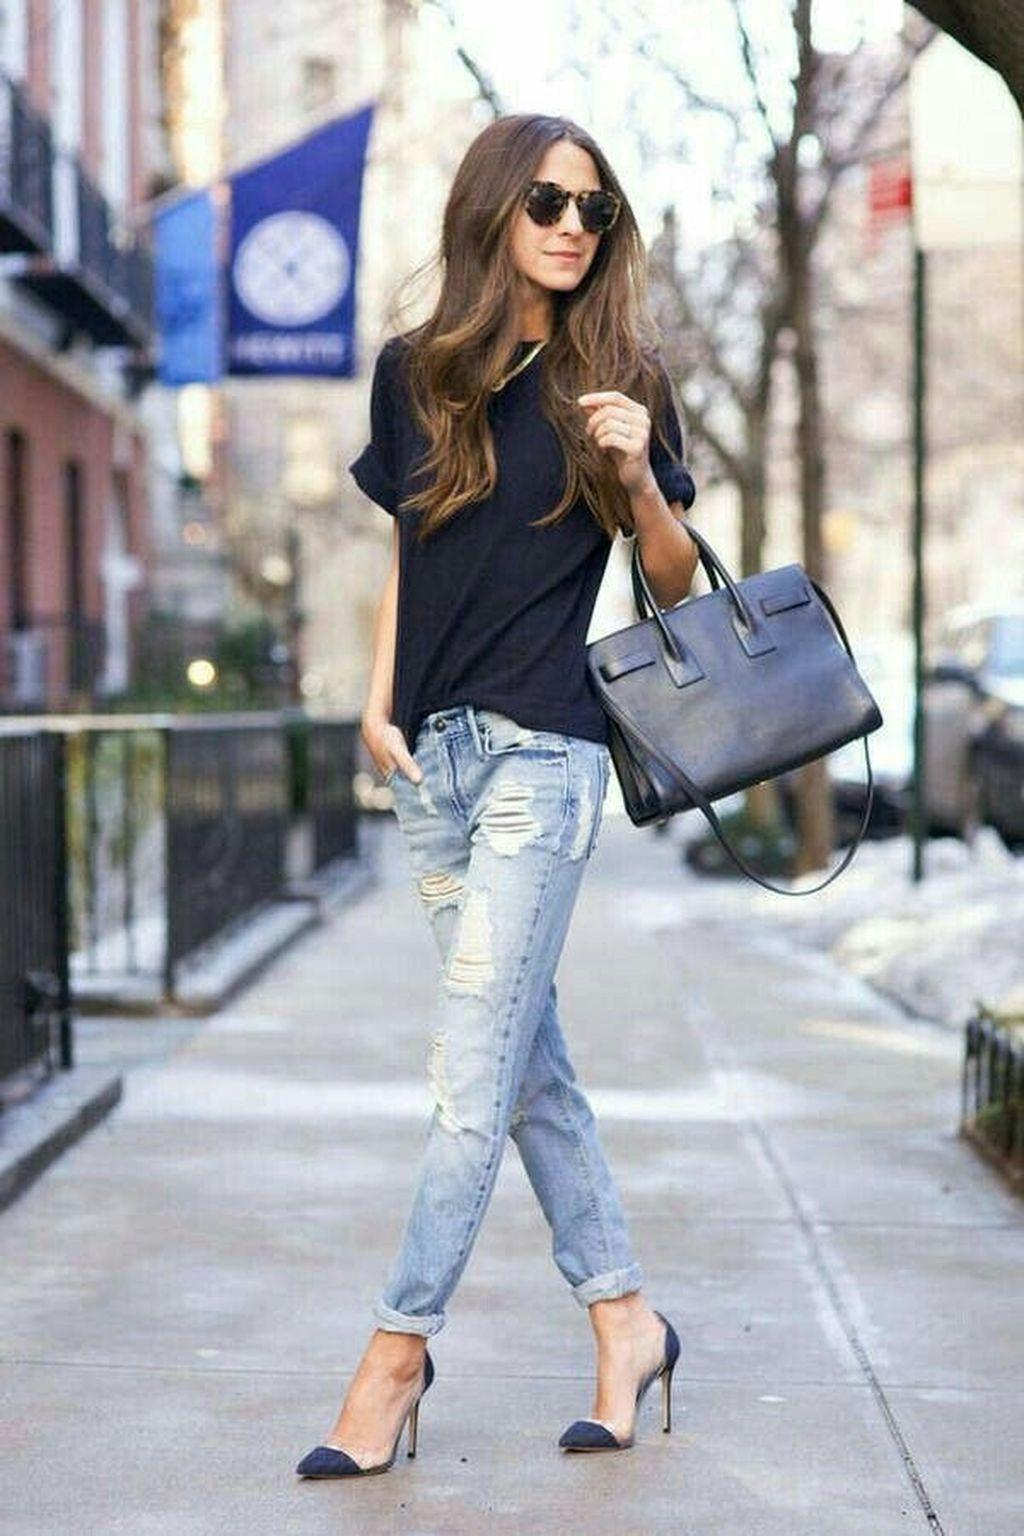 The comfortable summer trend is to wear all blue - a T-shirt, distressed jeans and pumps.